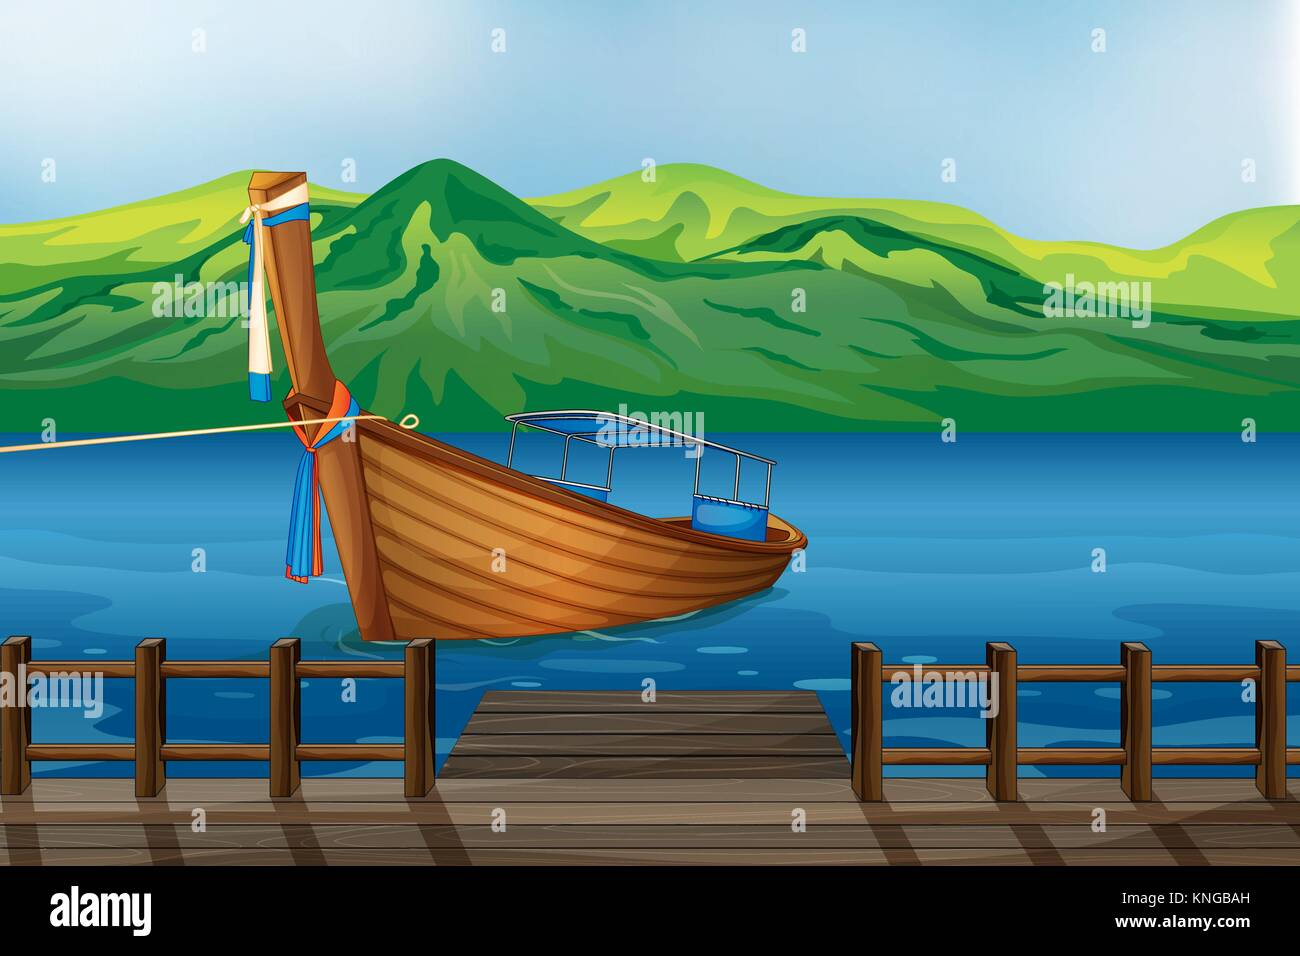 Illustration of a wooden boat tied at the seaport - Stock Vector